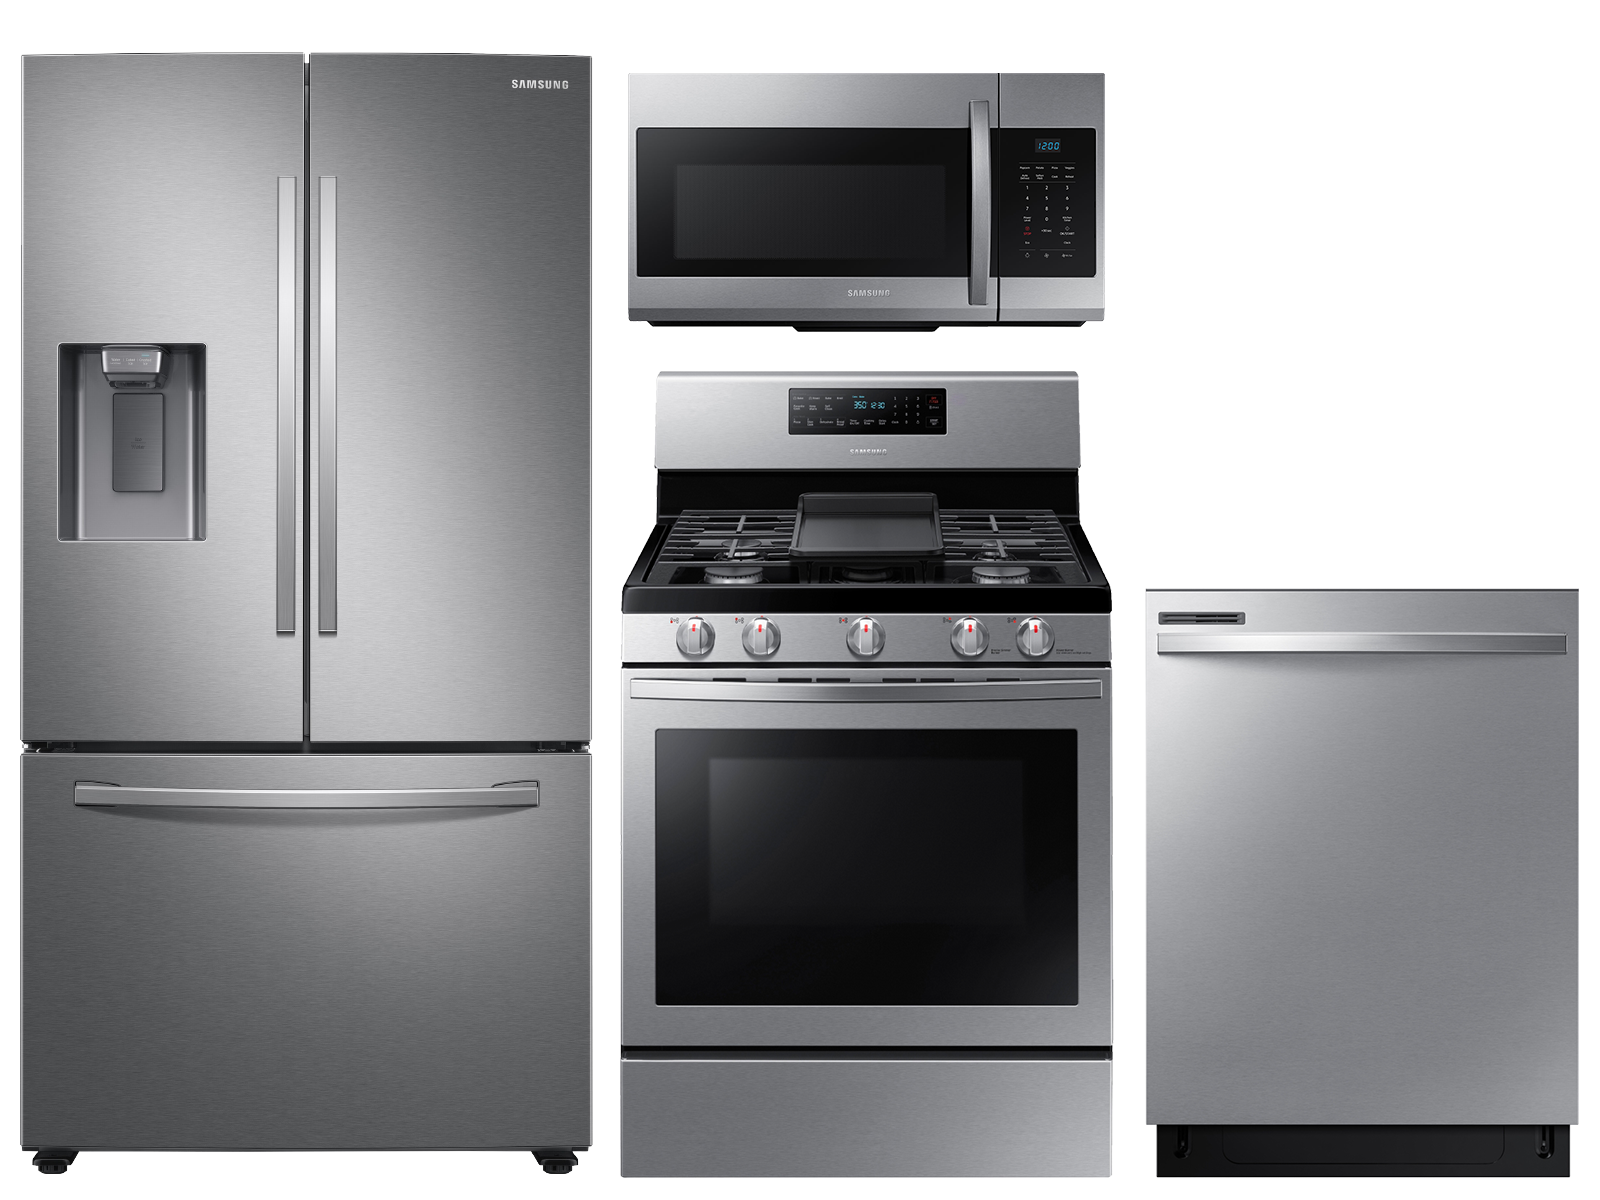 27 cu. ft. 3-door refrigerator, convention gas range, microwave and digital touch control dishwasher package